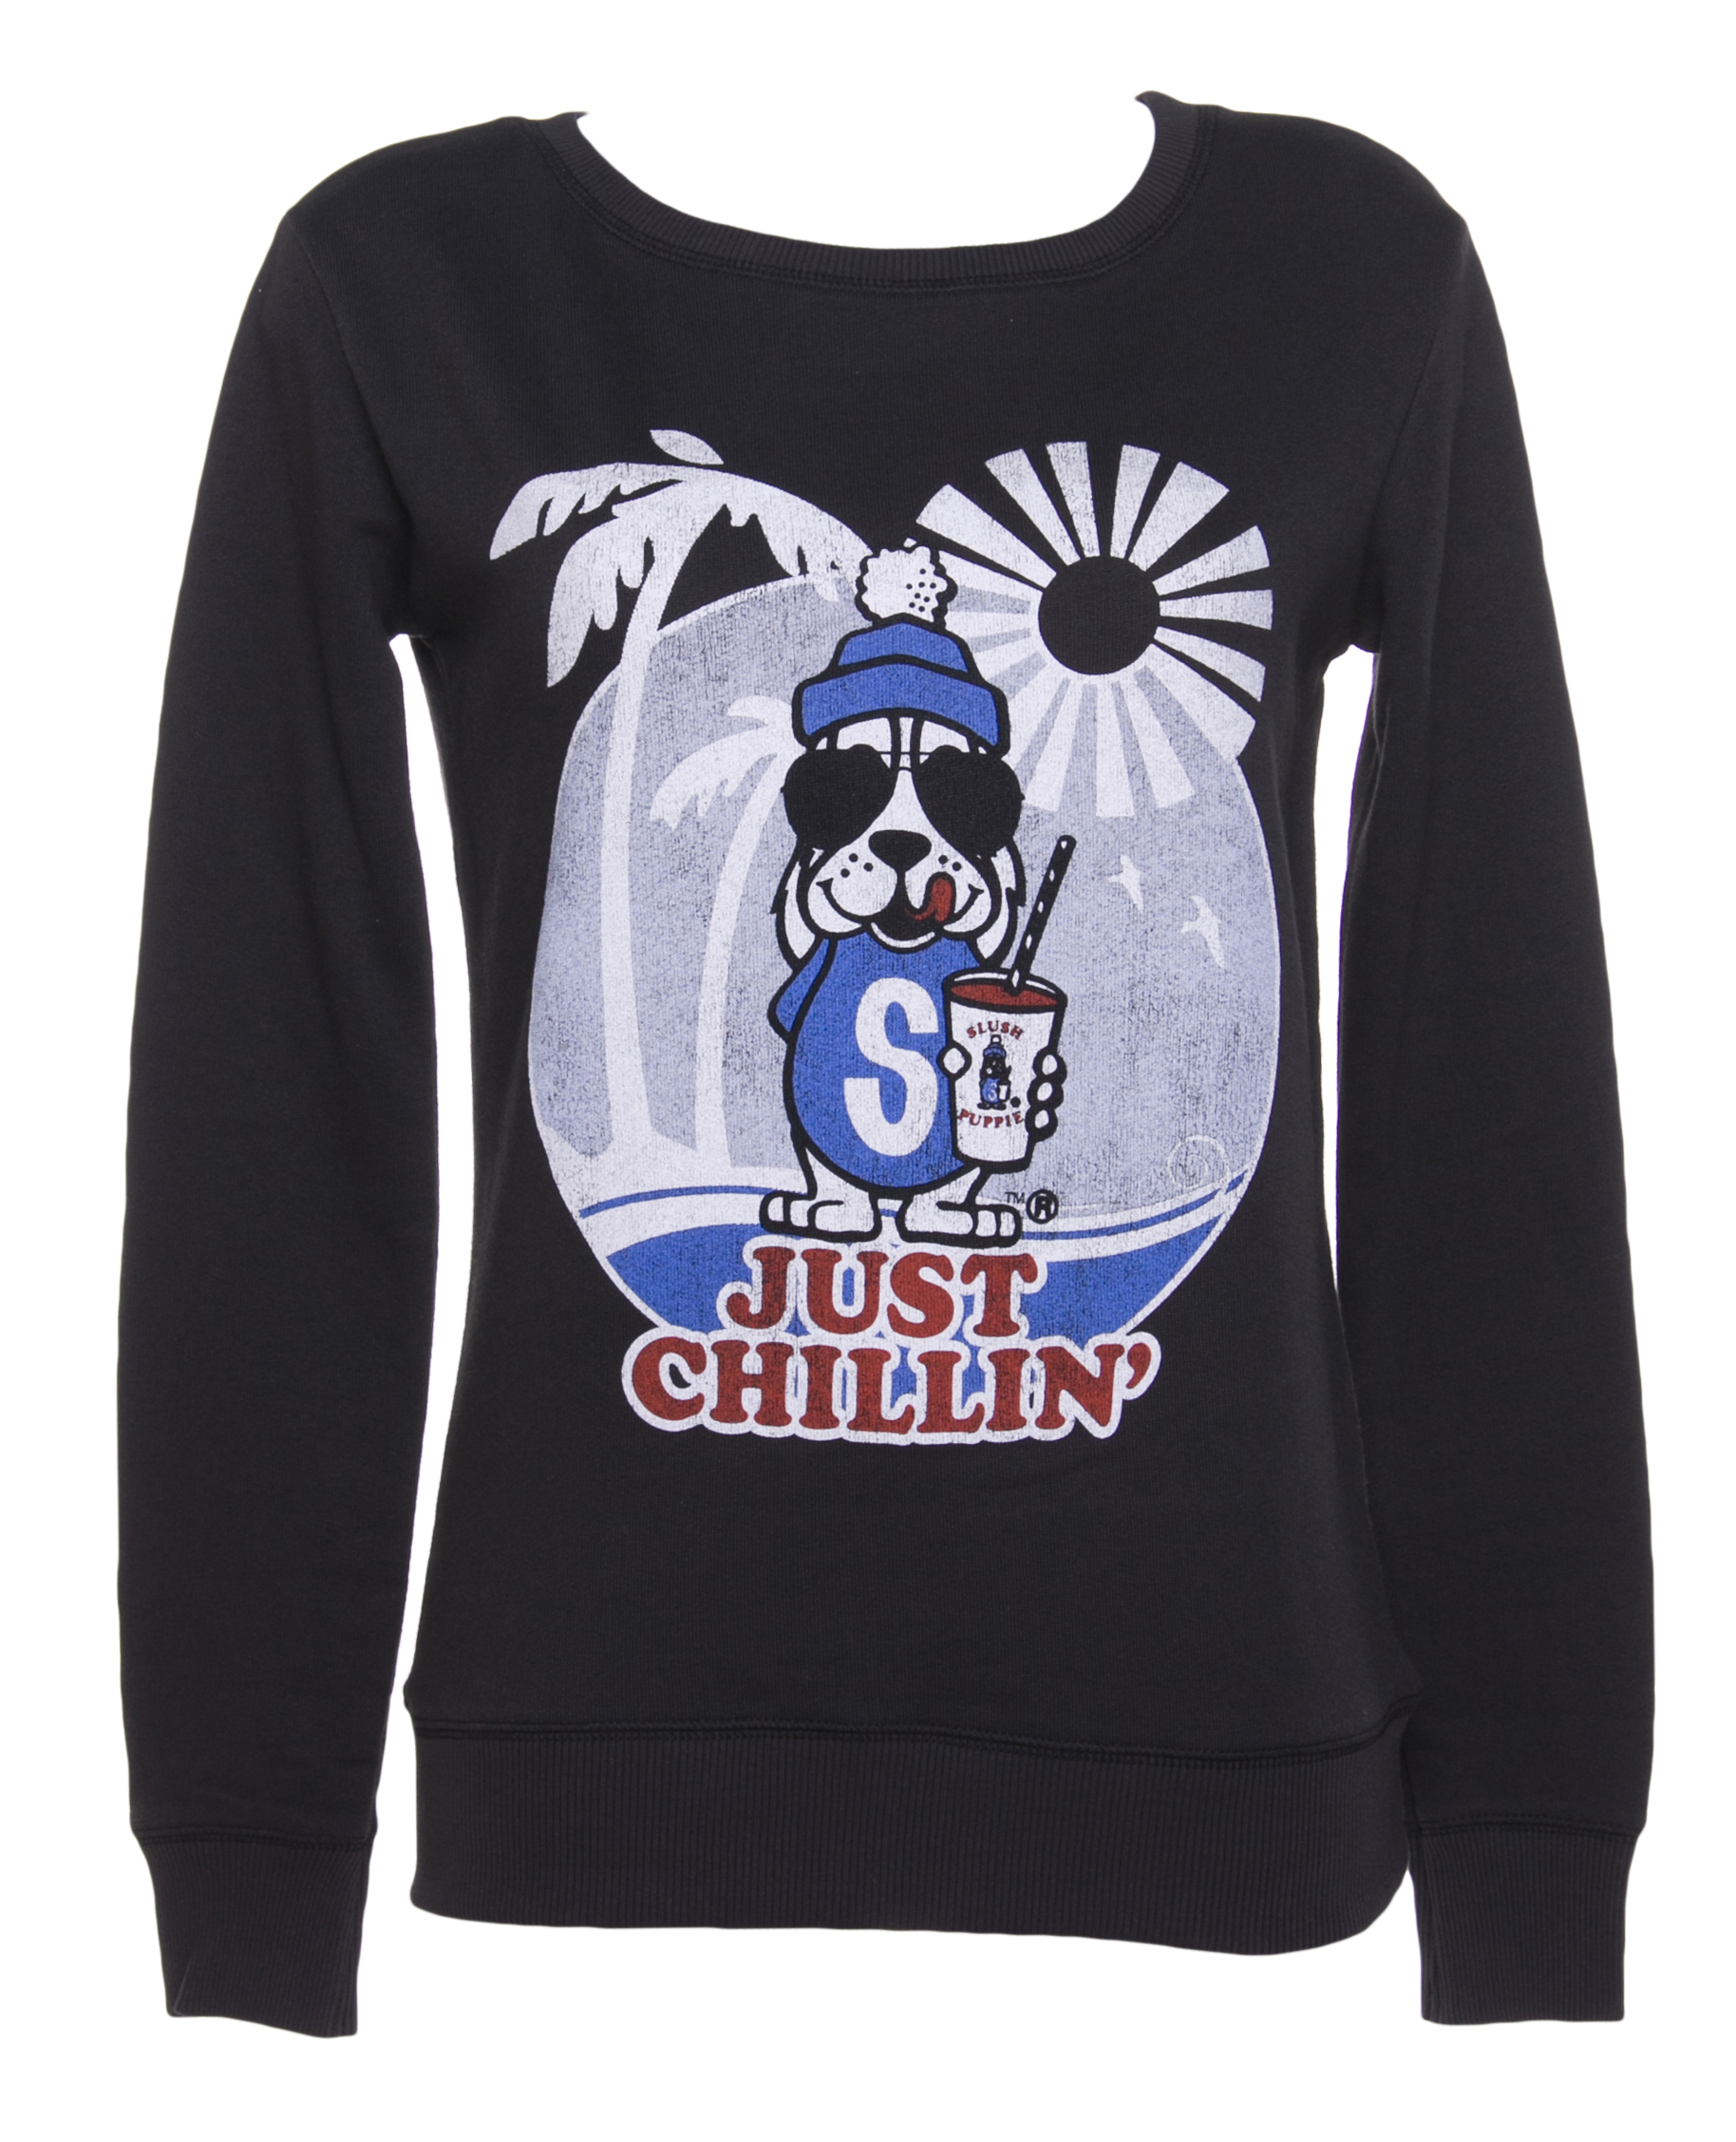 Ladies Slush Puppie Just Chillin Sweater £29.99